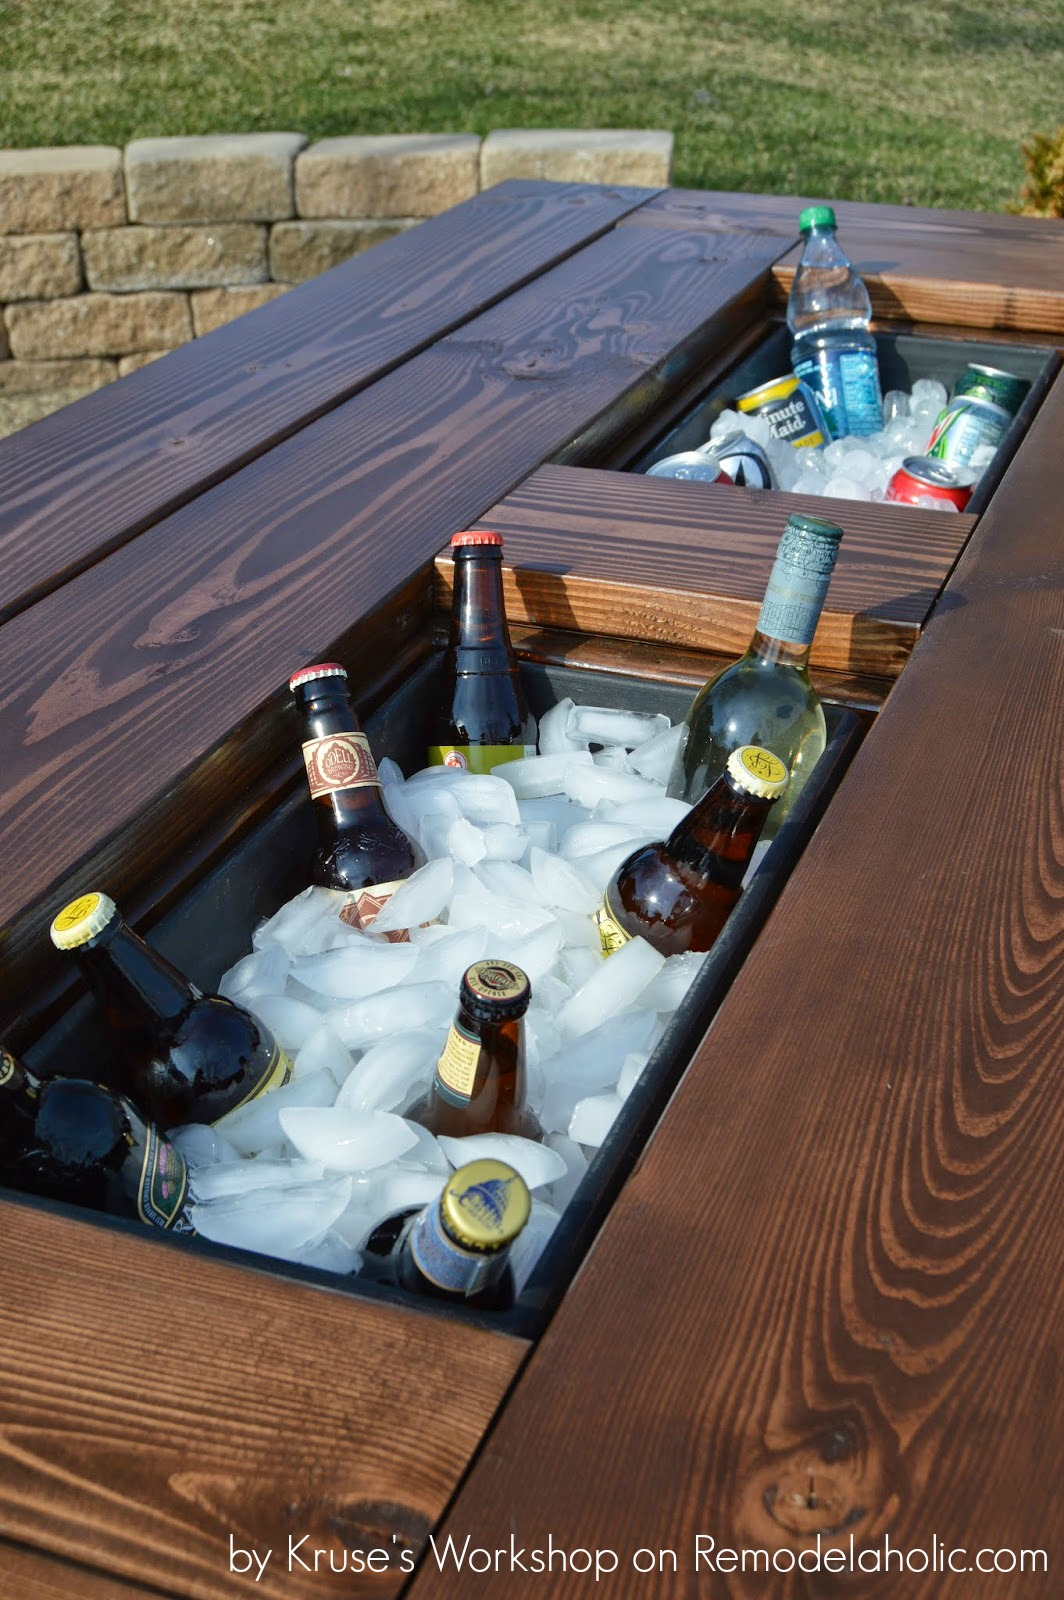 Patio Table with Built-in Ice Boxes